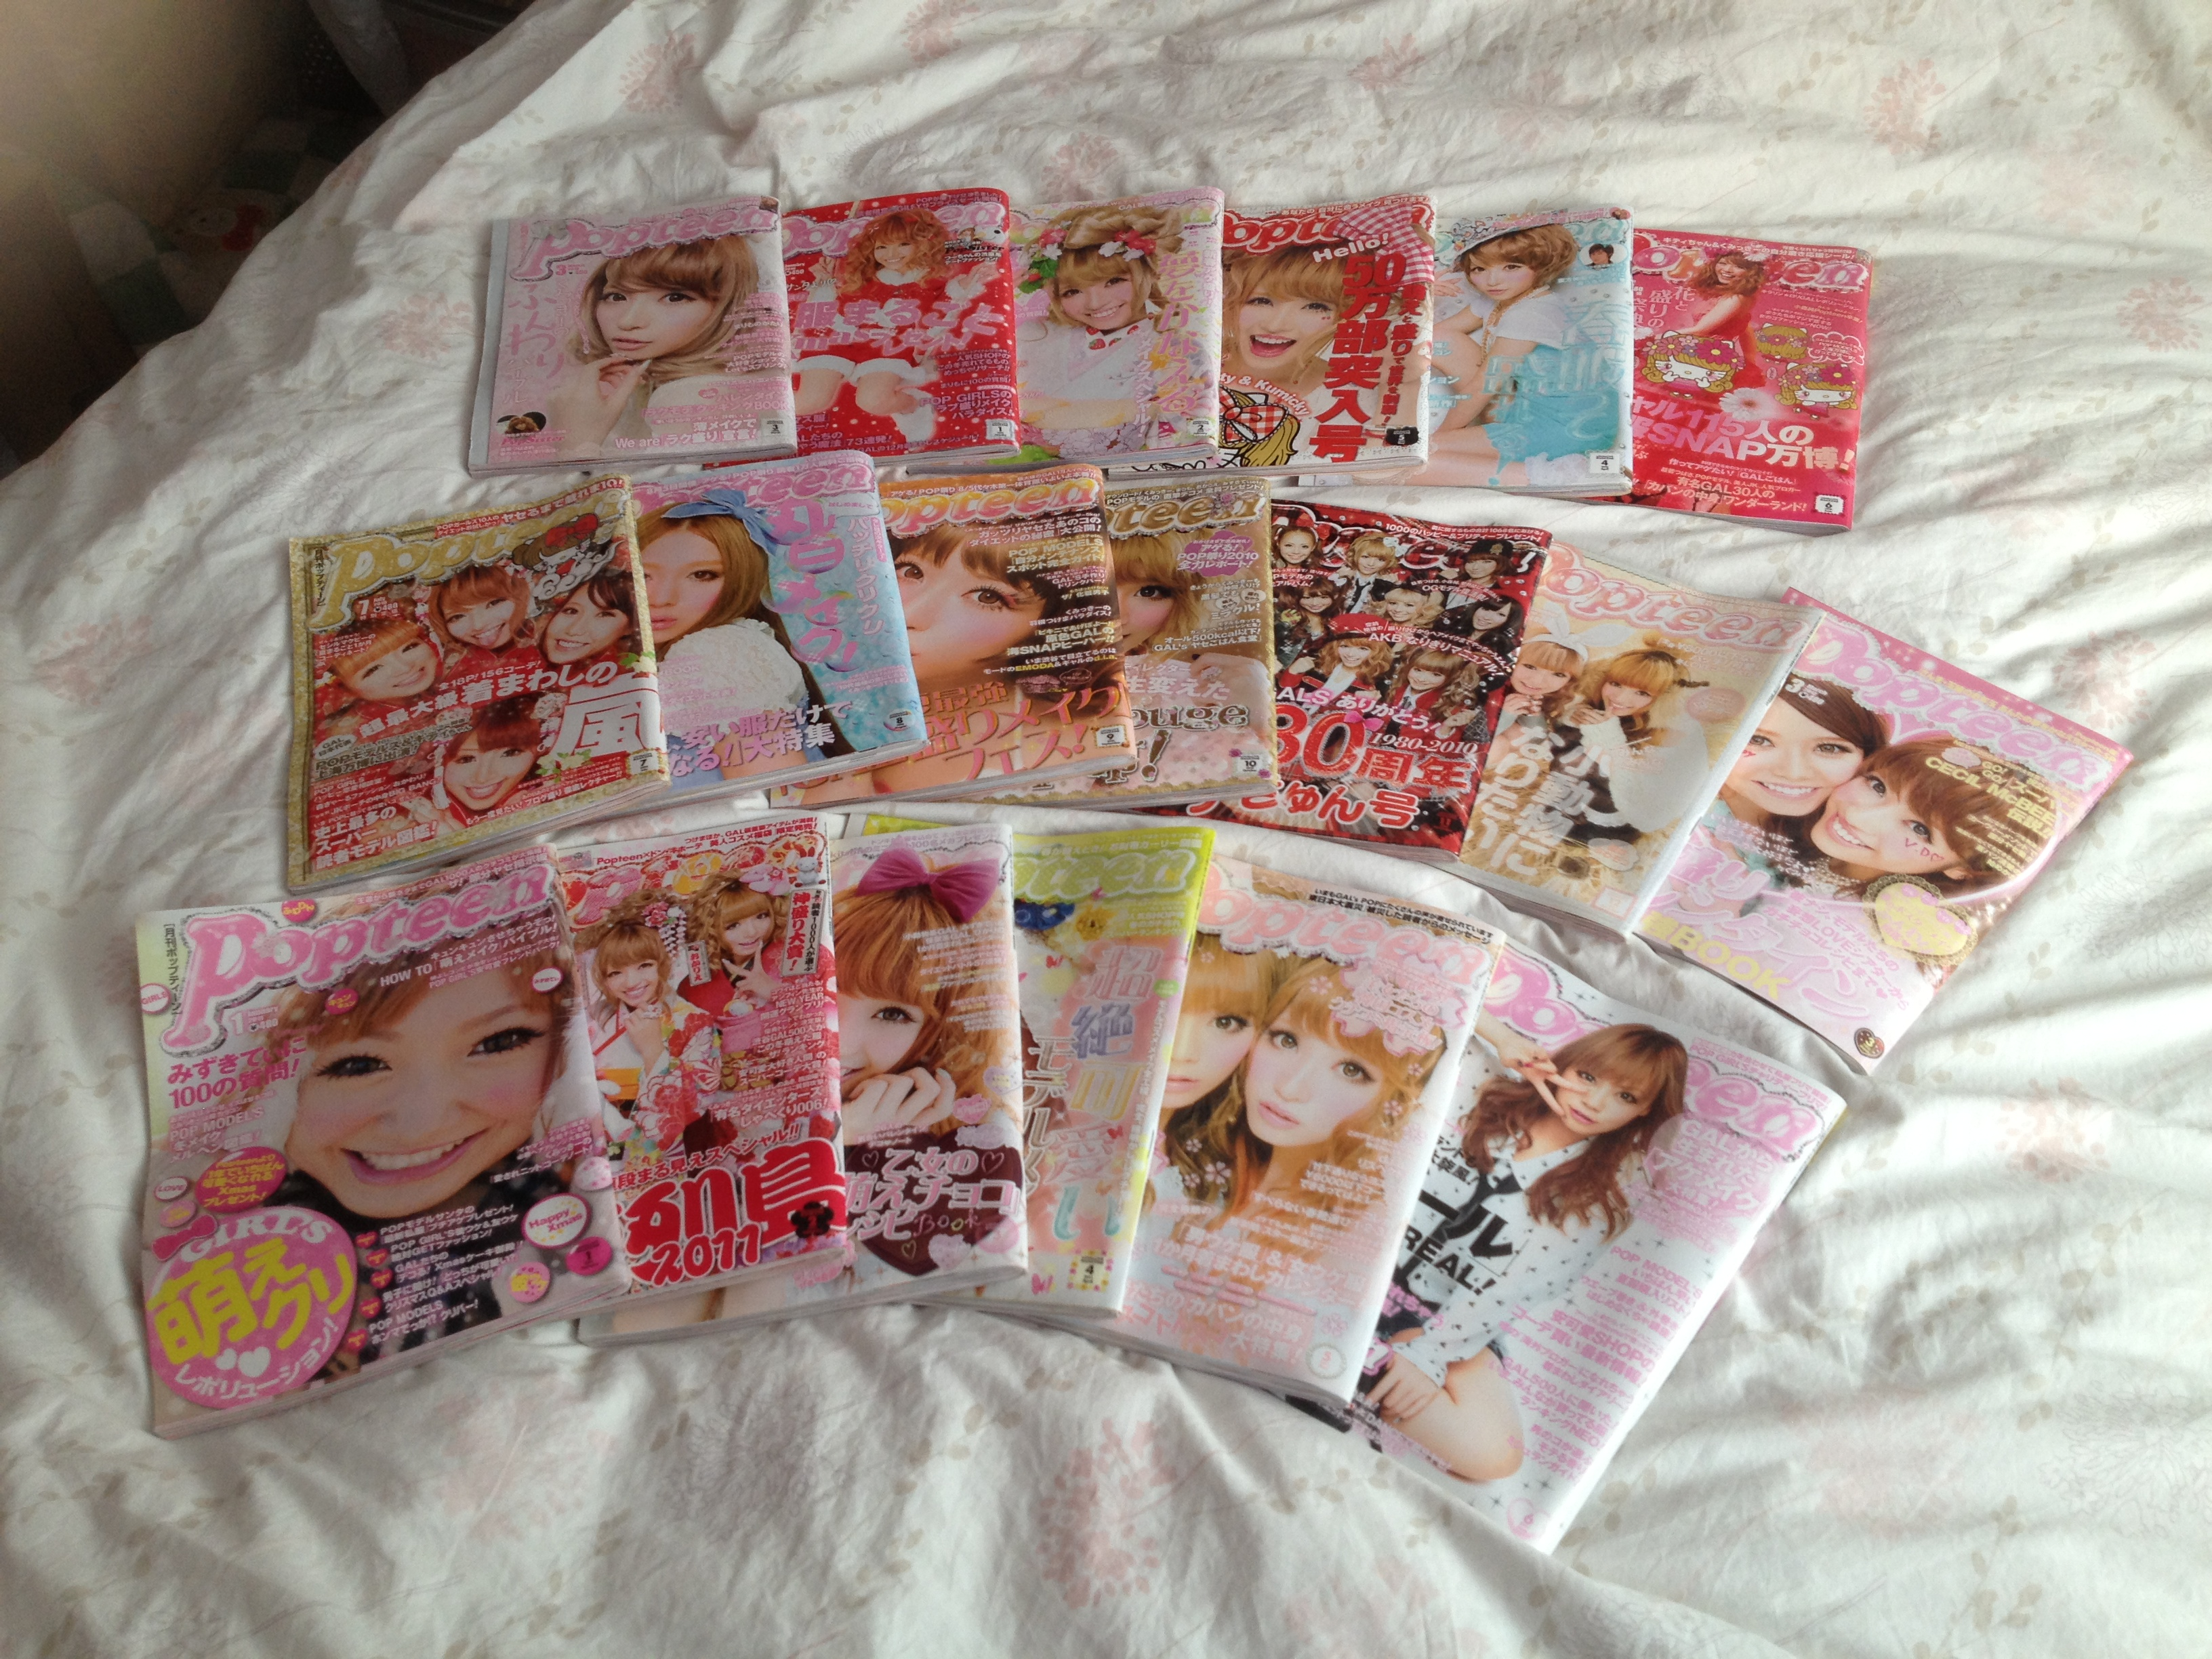 Popteen Japanese Teen Gyaru Girl Magazines One Year Series 2010, 2011